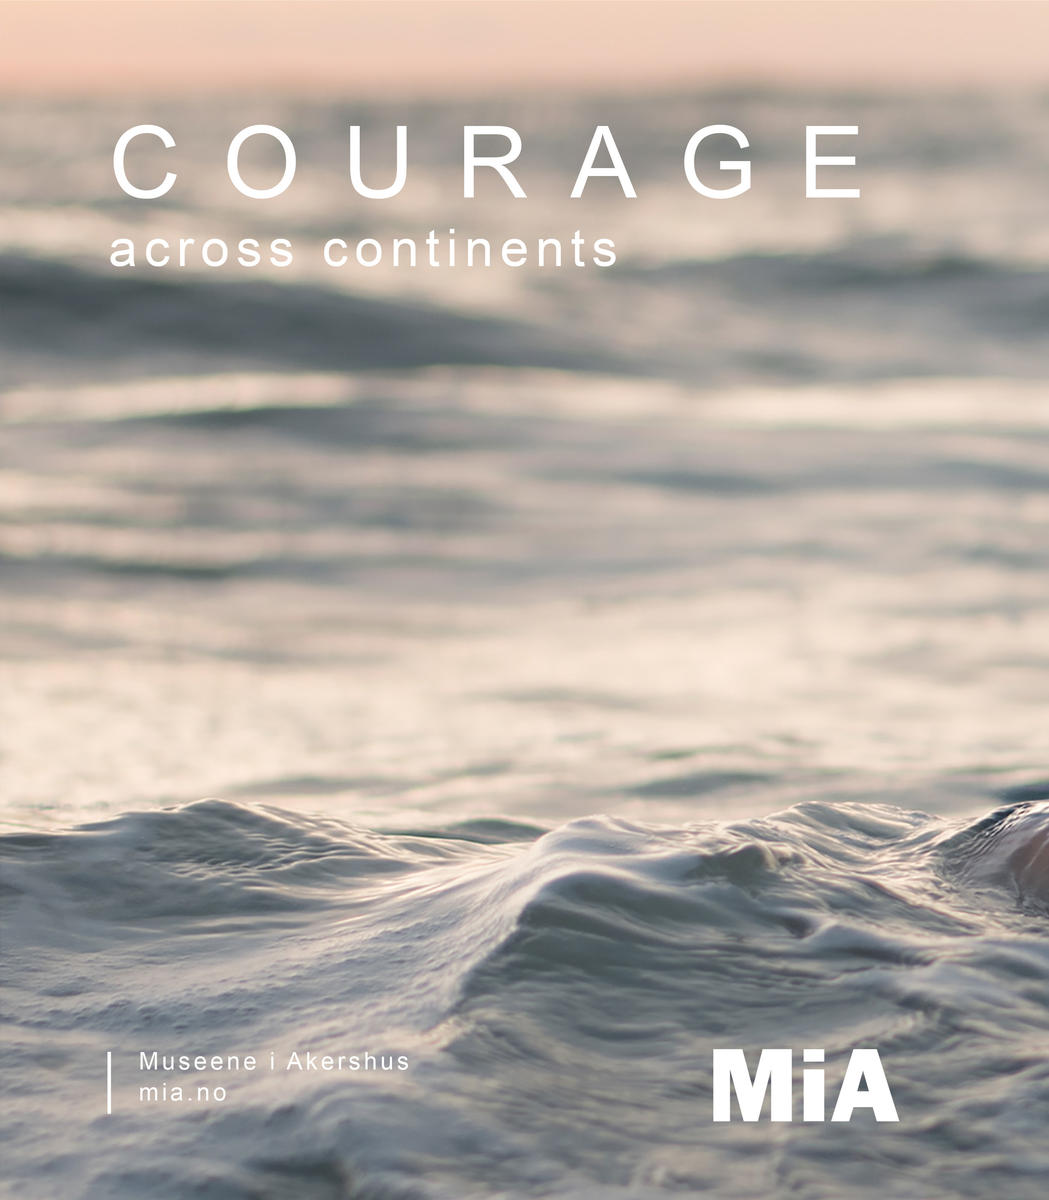 Norway_Courage_across_Continents_-_Booklet_Covers-1.jpg